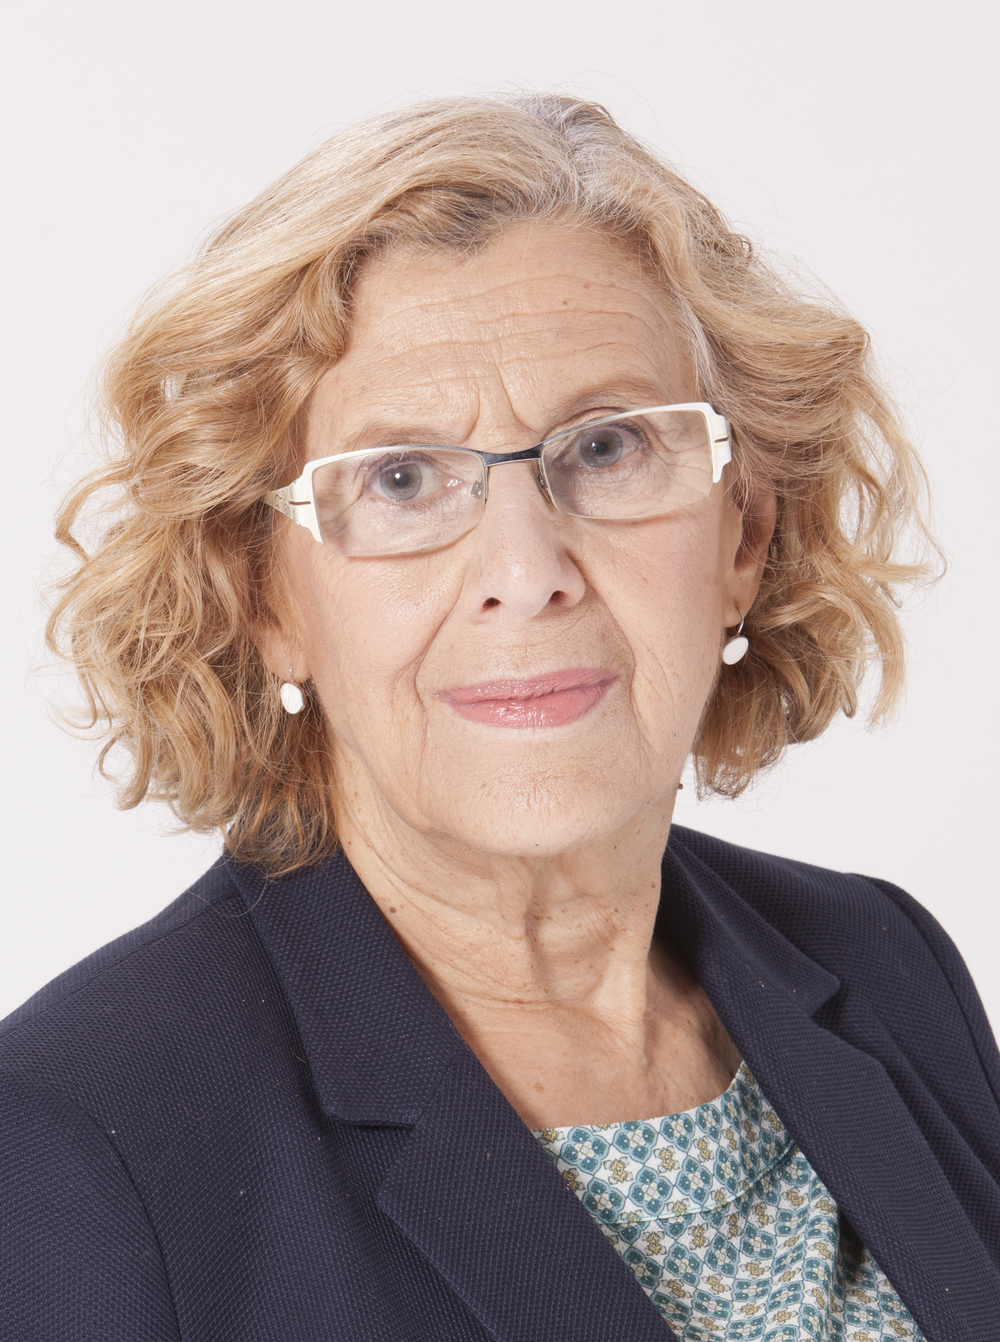 Madrid Mayor Manuela Carmena. Credit: Ahora Madrid, David Arenal via Wikimedia Commons.